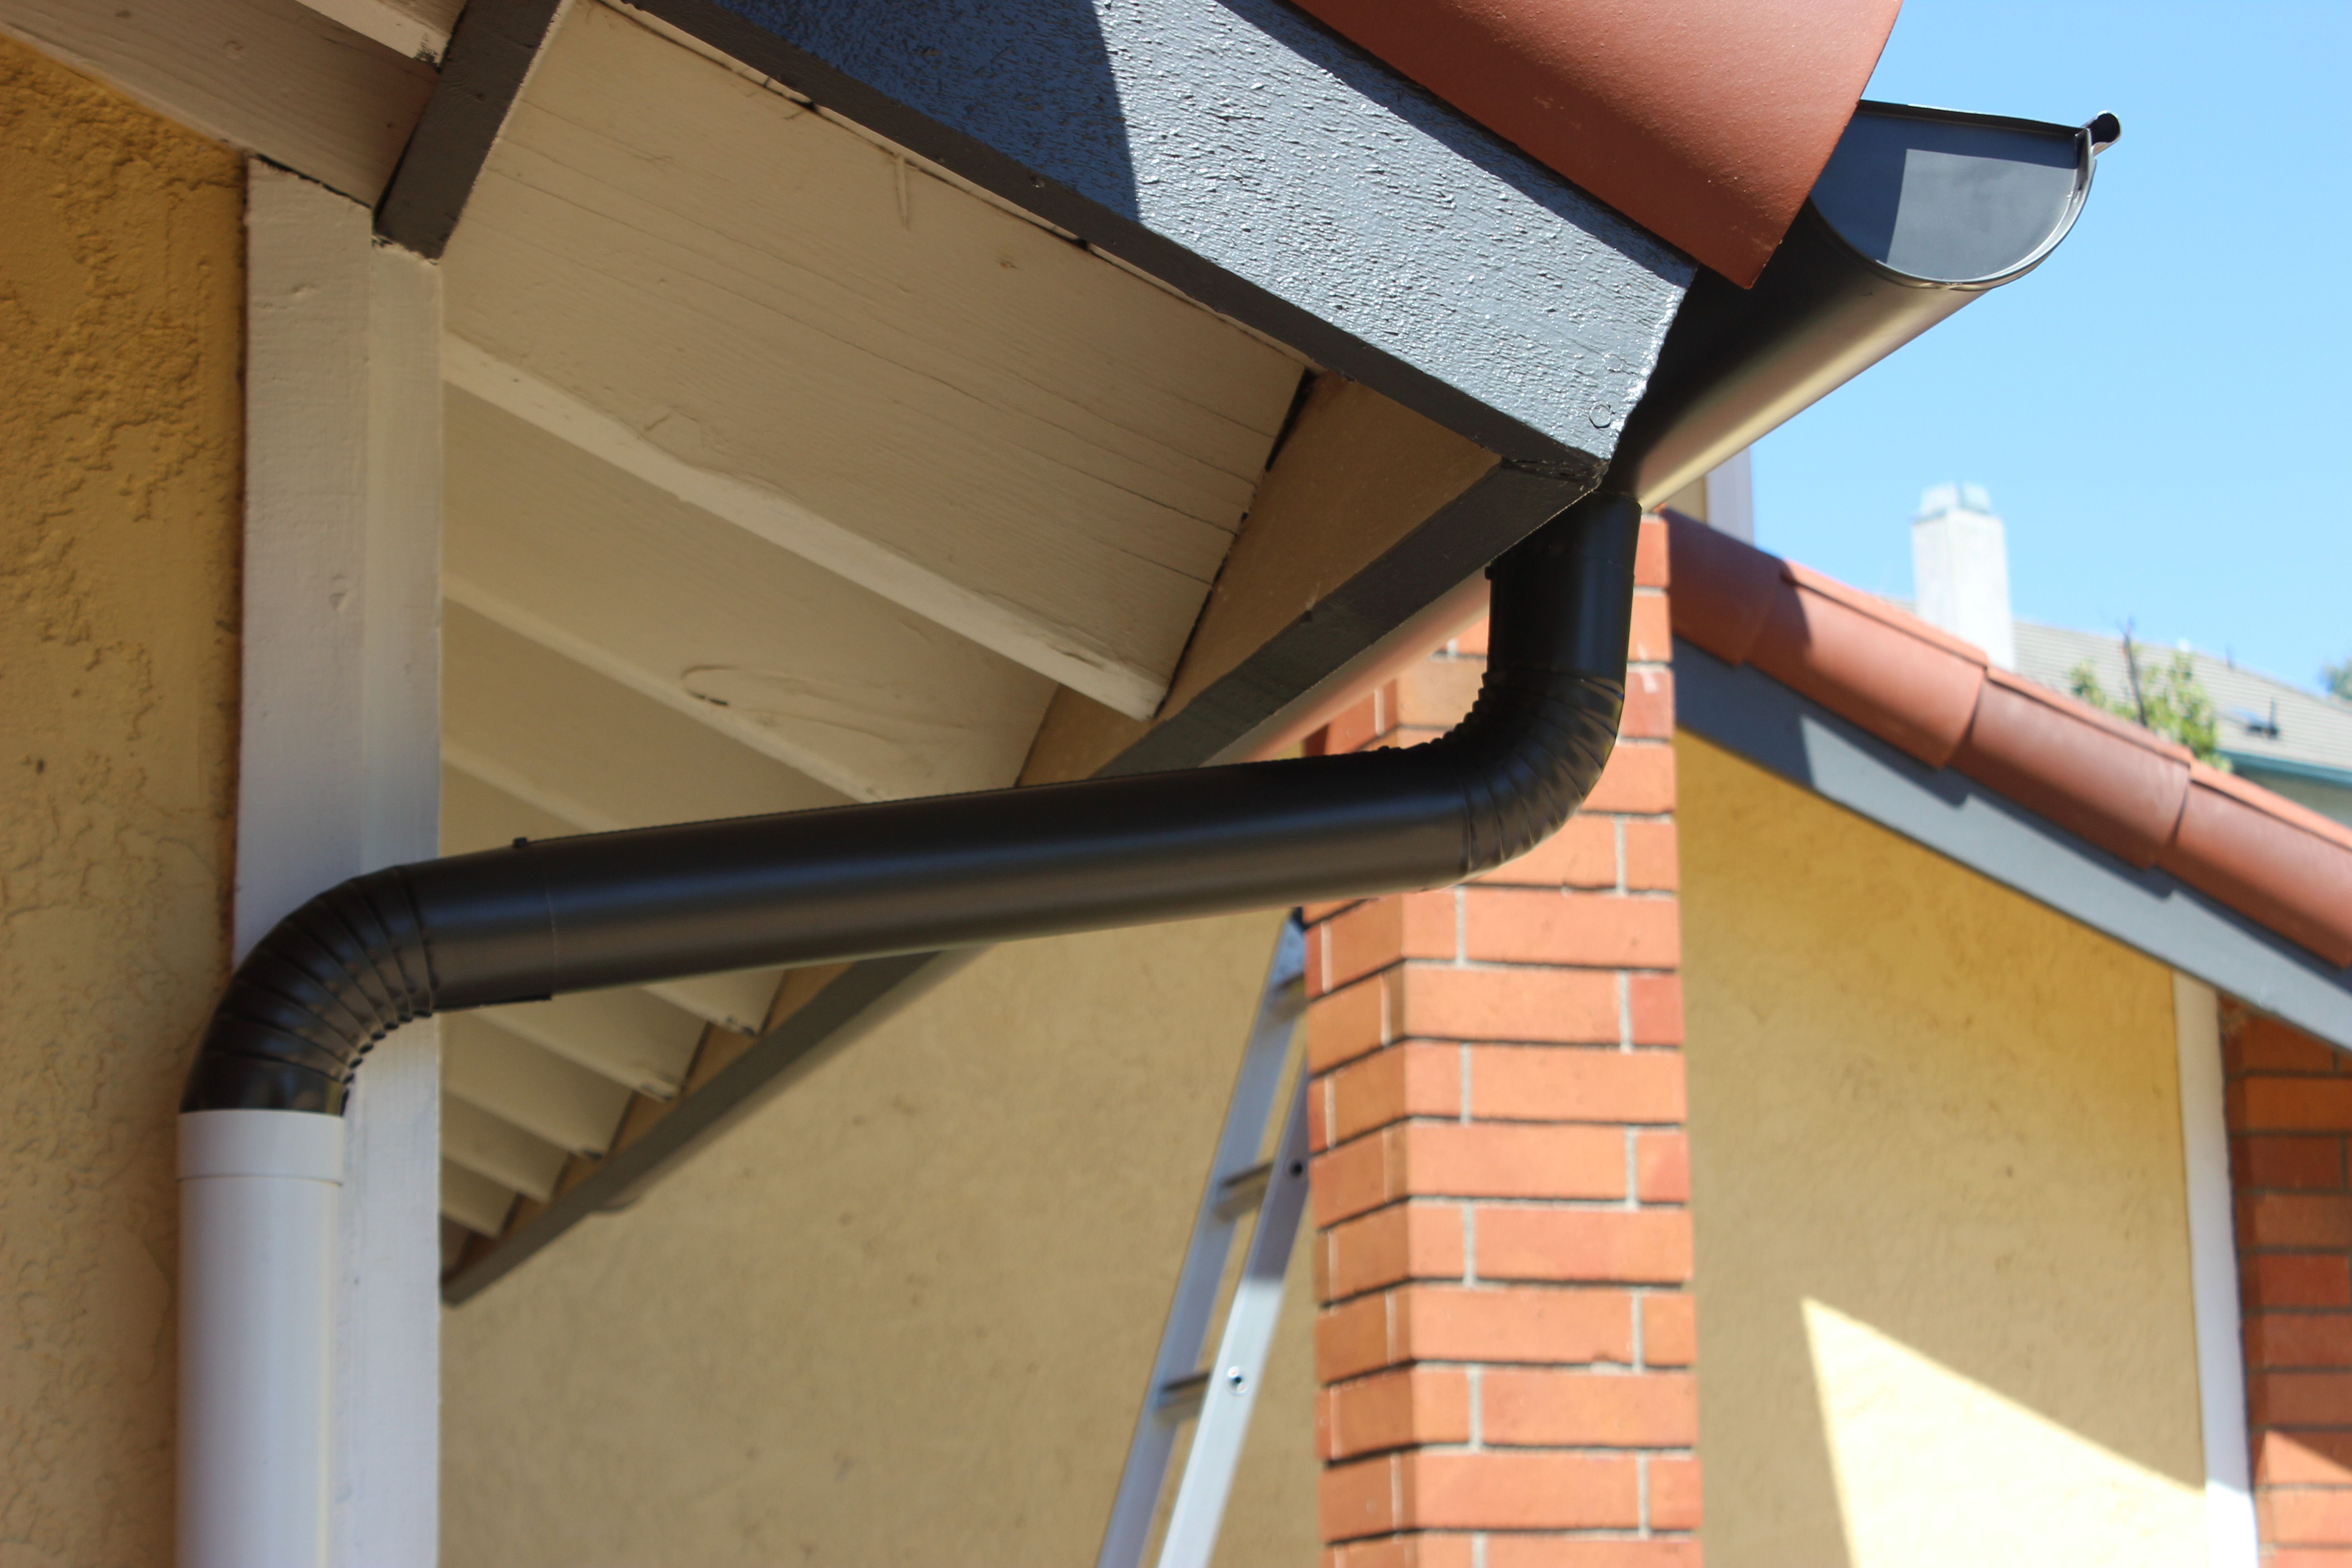 Seamless Aluminum Half Round Rain Gutters With Dual Colored Round Downspouts This Rain Gutter Ins How To Install Gutters Rain Gutter Installation Rain Gutters